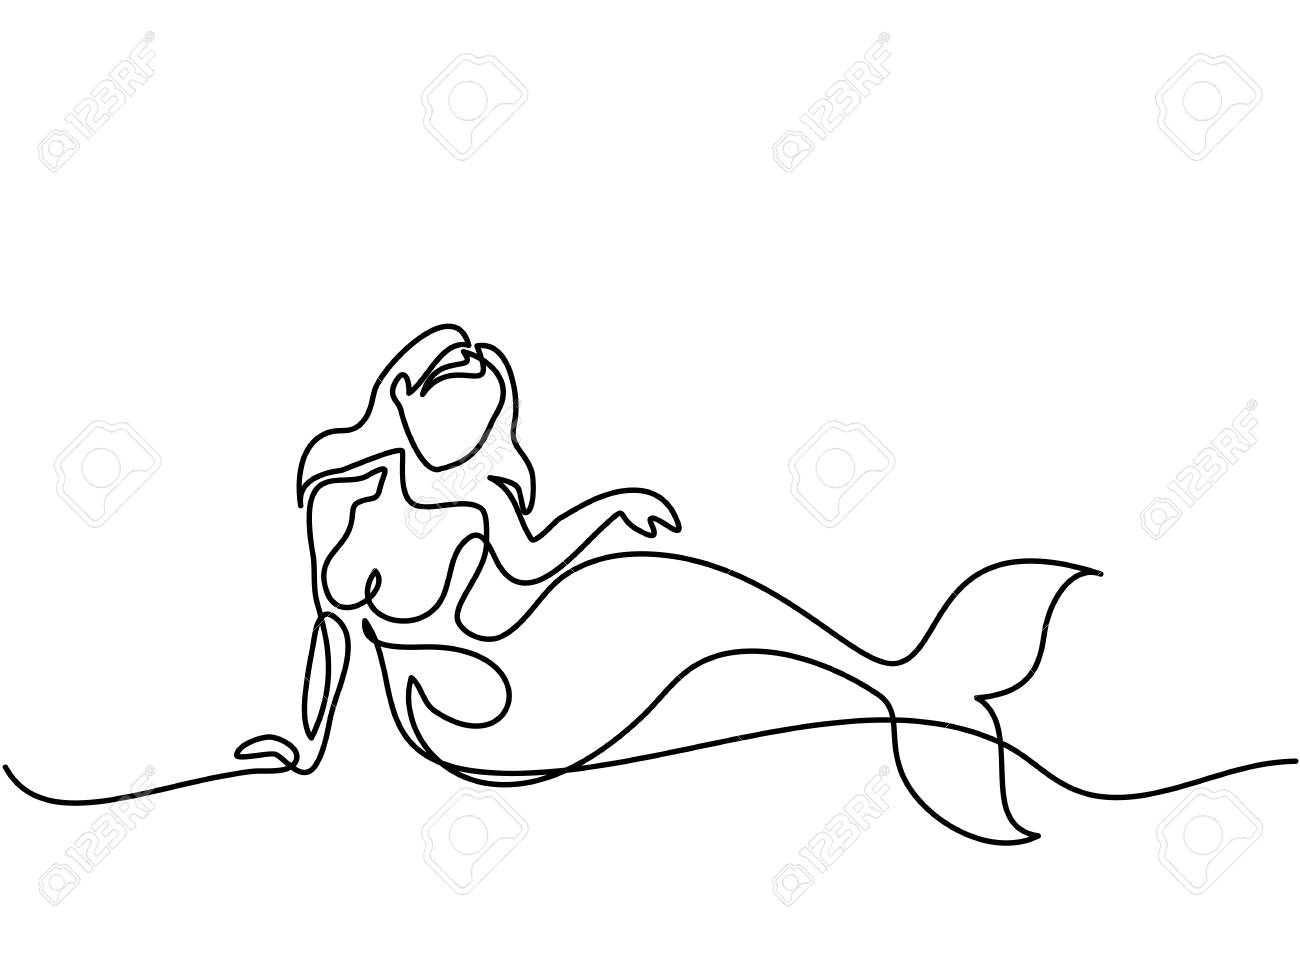 1300x975 Mermaid Laying And Dreaming On The Beach. Continuous Line Drawing